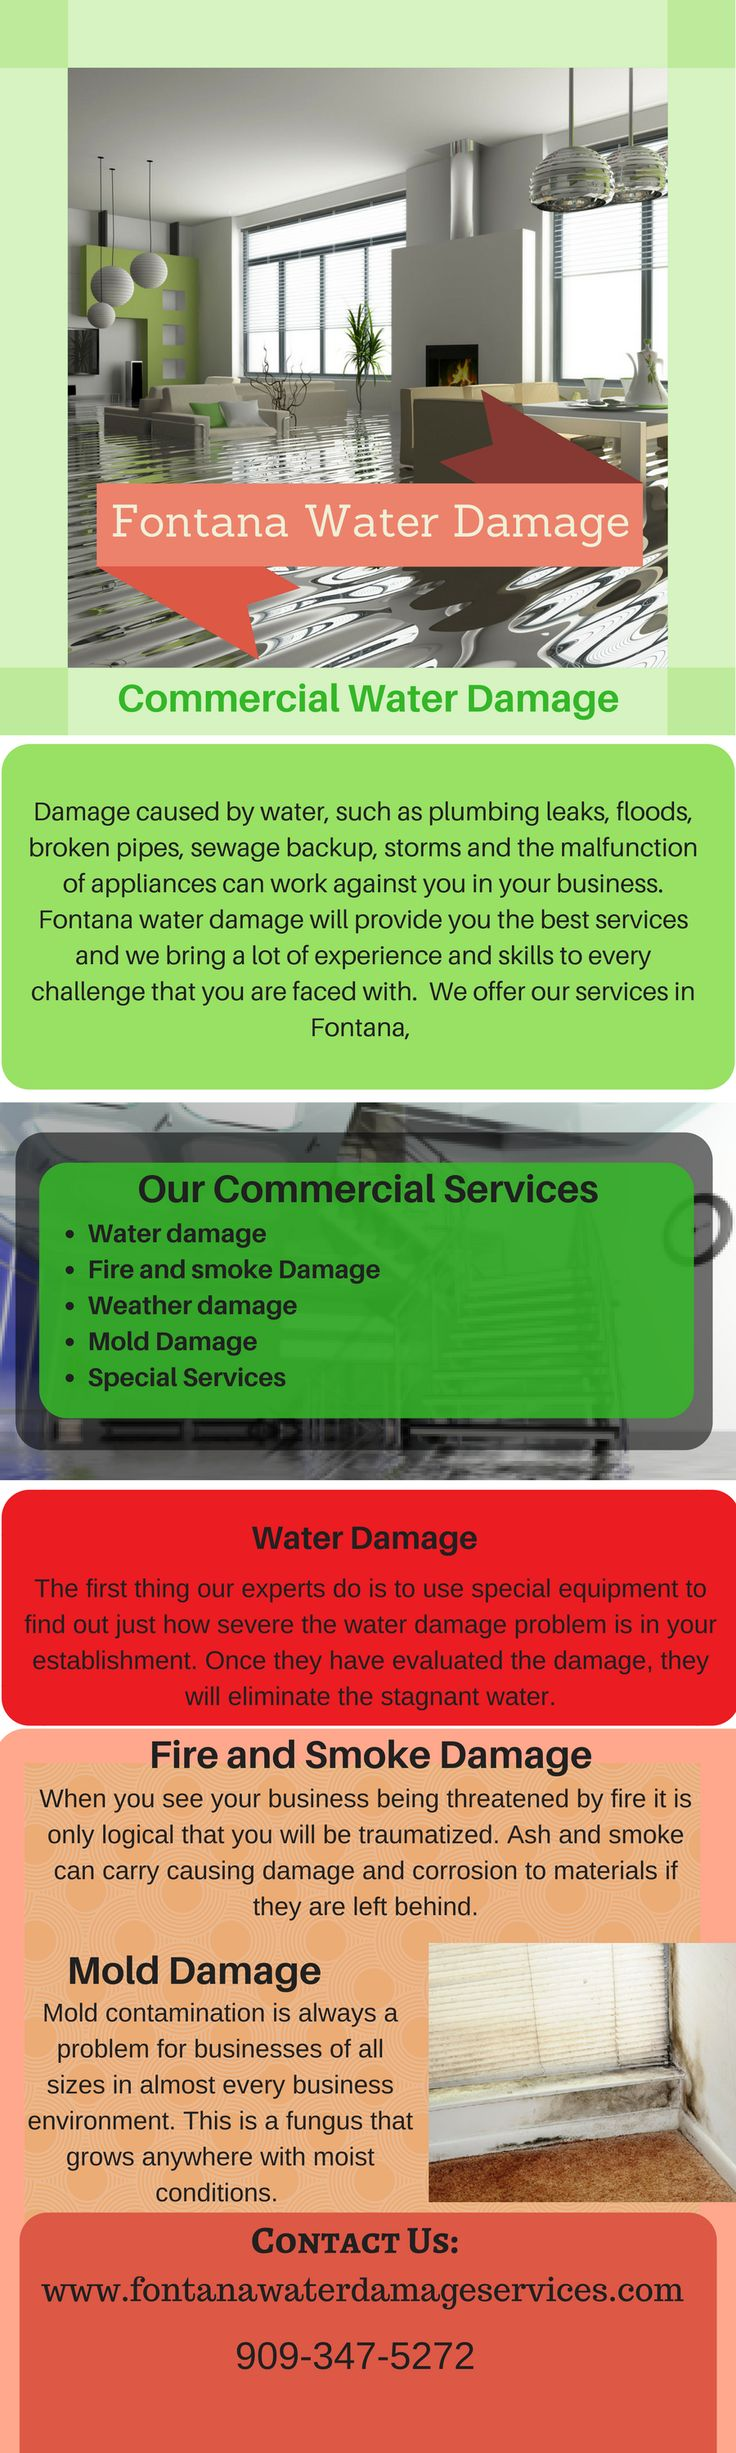 Get a unique service from water damage.  Fontana water damage restoration  provides you reliable services and offer their services in Fontana, Rancho Cucamonga, Bloomington, Colton & Ontario. They have a proficient expert who resolves all your problems in both commercial & residential areas. They offer services like water damage, content restoration, mold remediation, fire damage restoration & many more. For more details you can click here- http://fontanawaterdamageservices.com